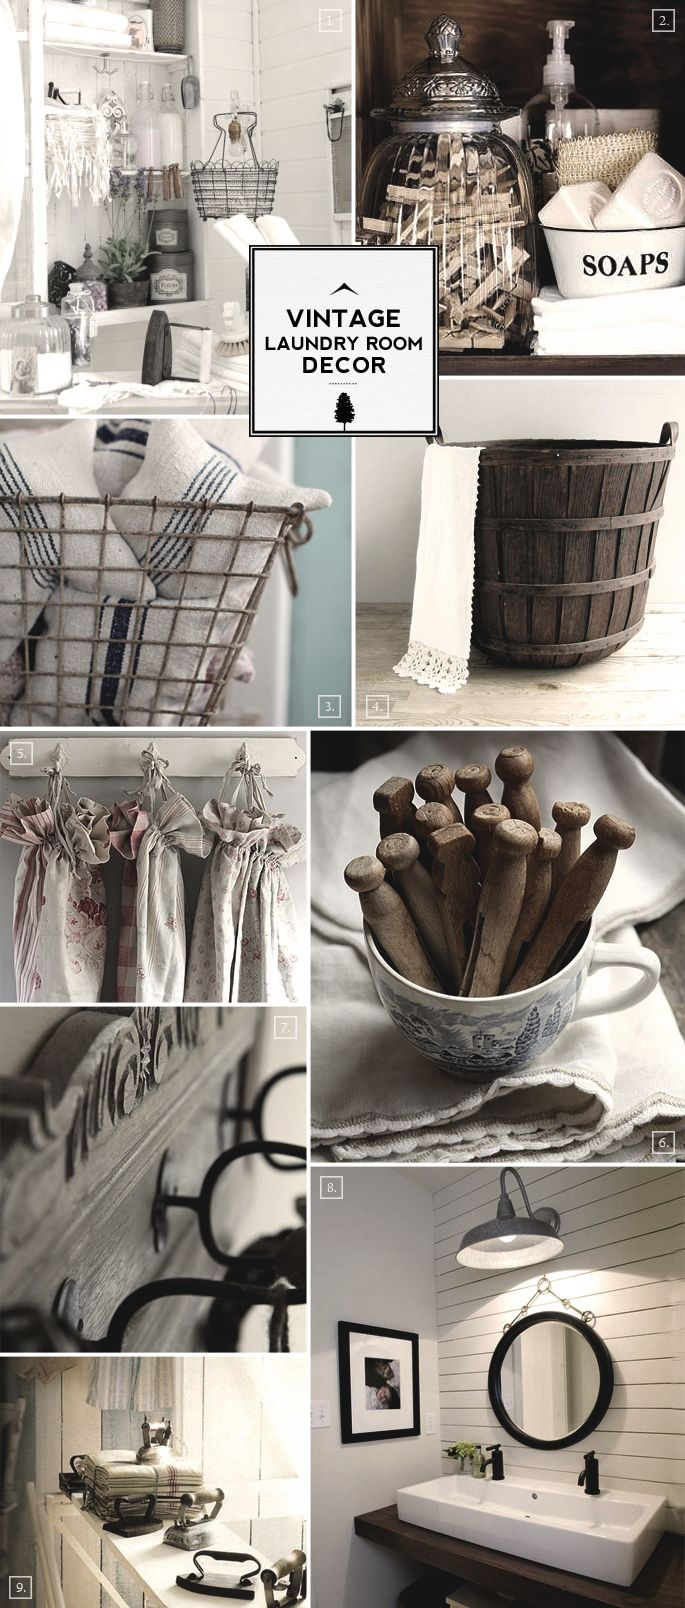 Vintage Laundry Room Decor Style Guide Vintage Laundry Room Decor Ideas  Vintage Laundry